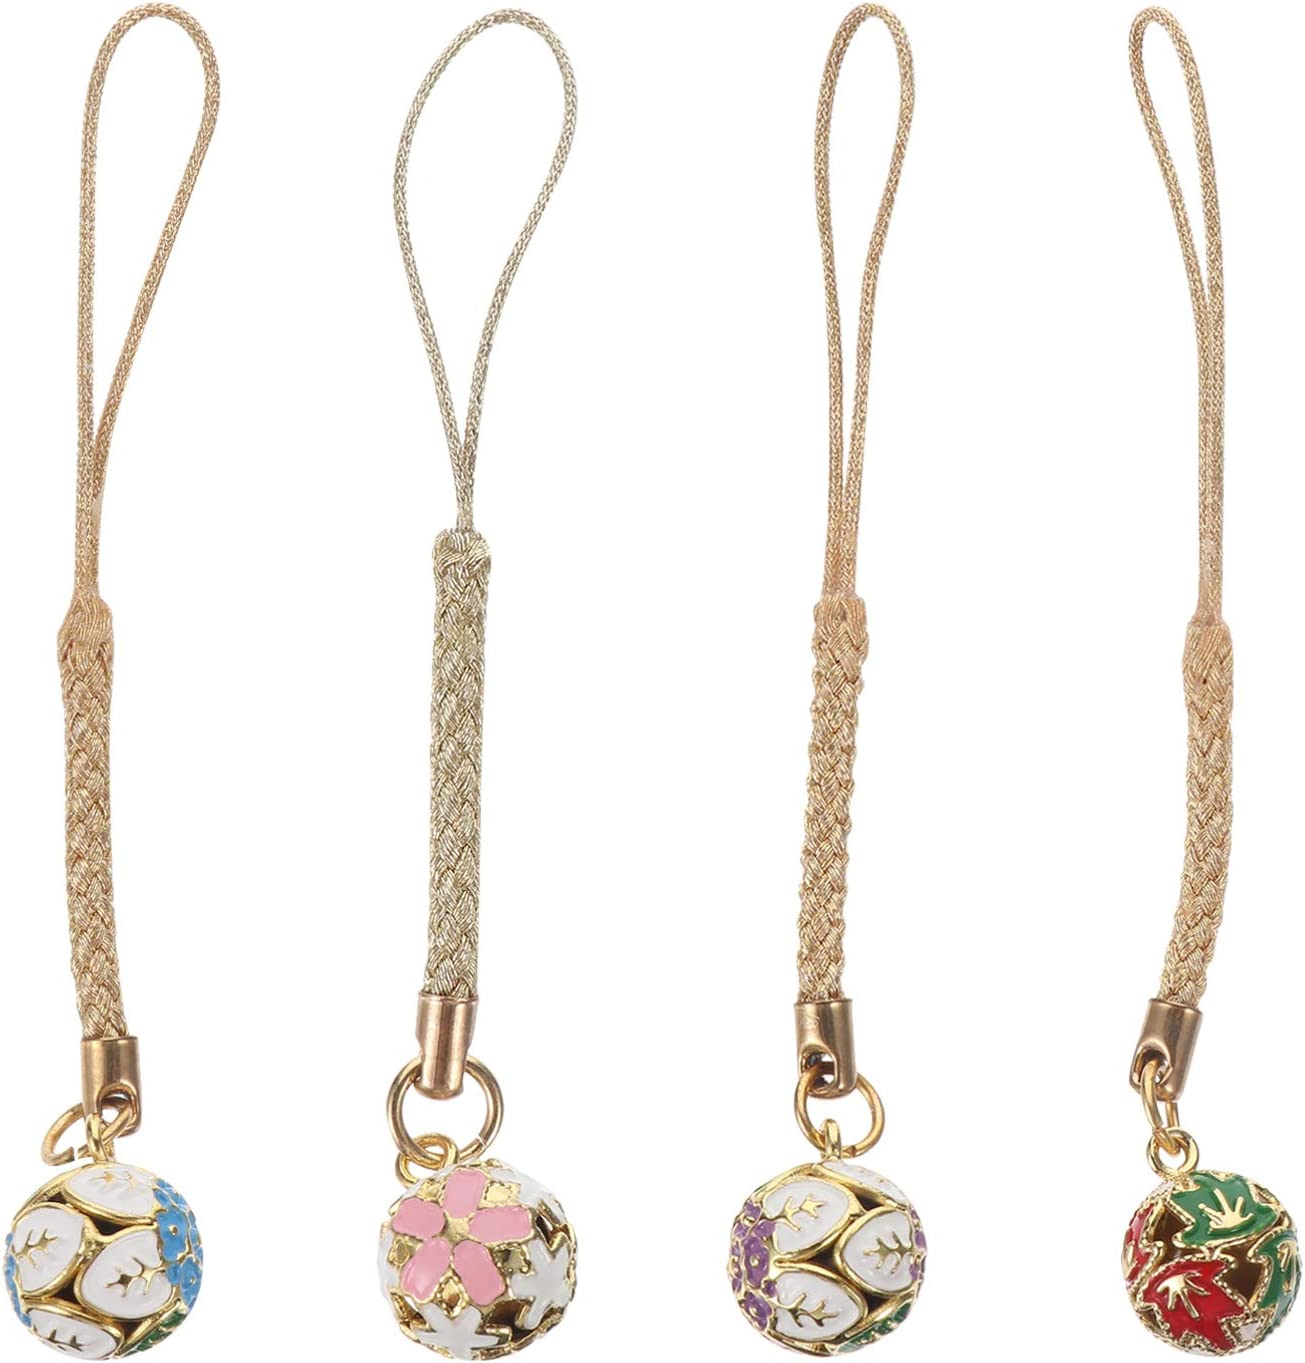 Hemobllo Cell Phone Strap - Charms Pcs Max Soldering 60% OFF Mobile 4